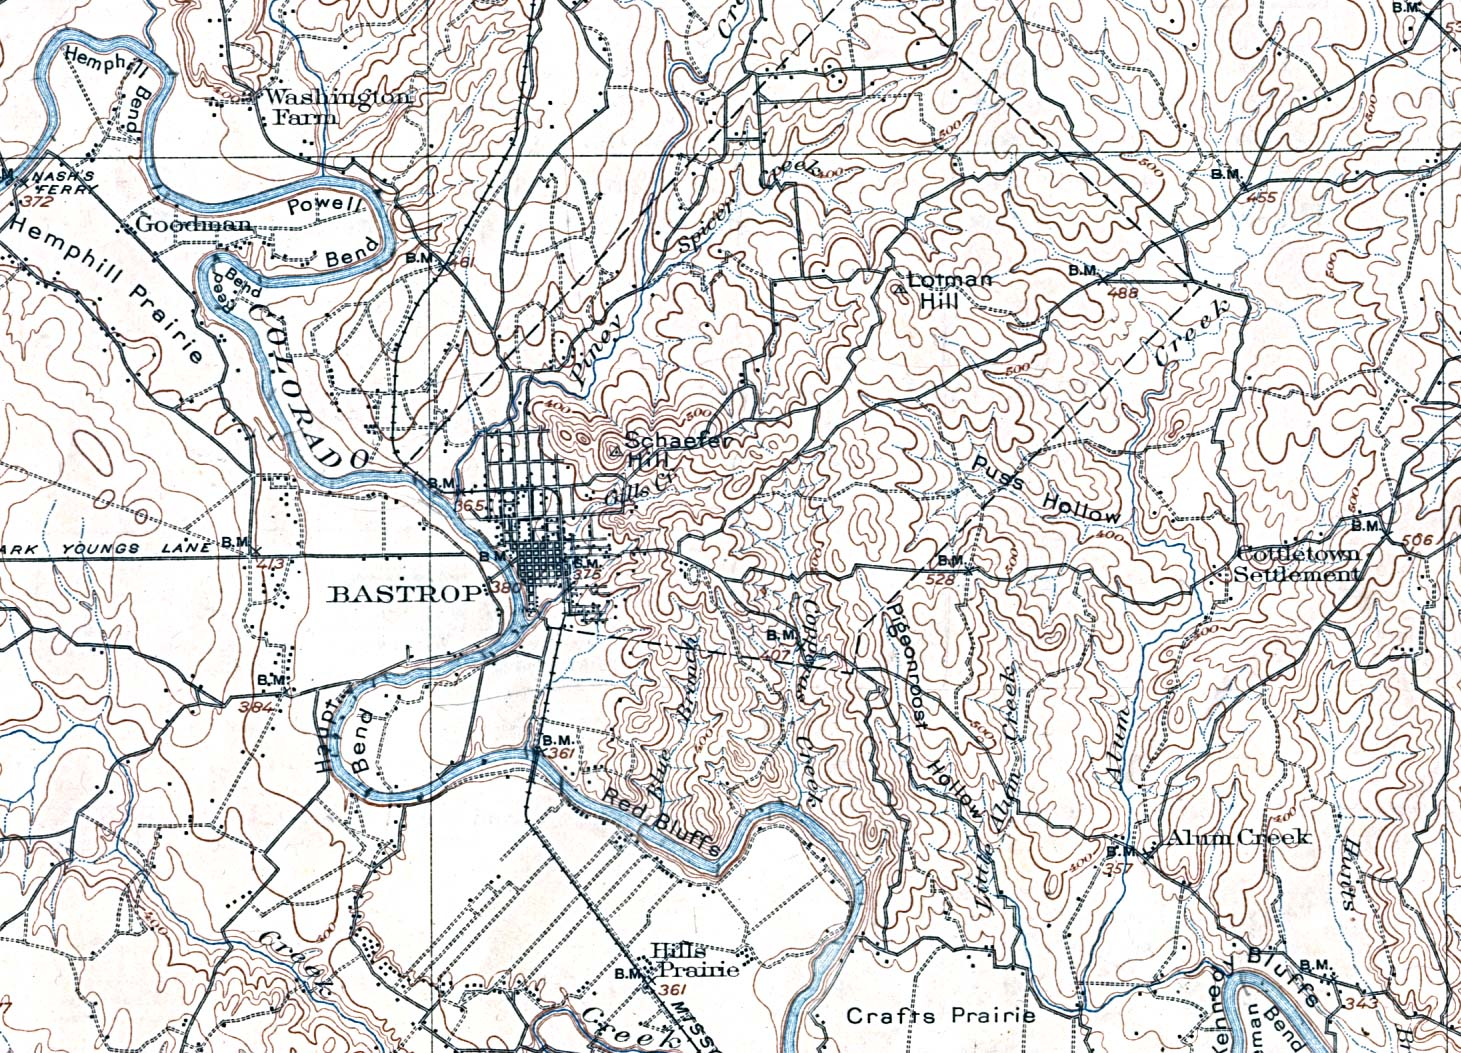 United States Historical City Maps PerryCastañeda Map - Original prairie areas in the us map